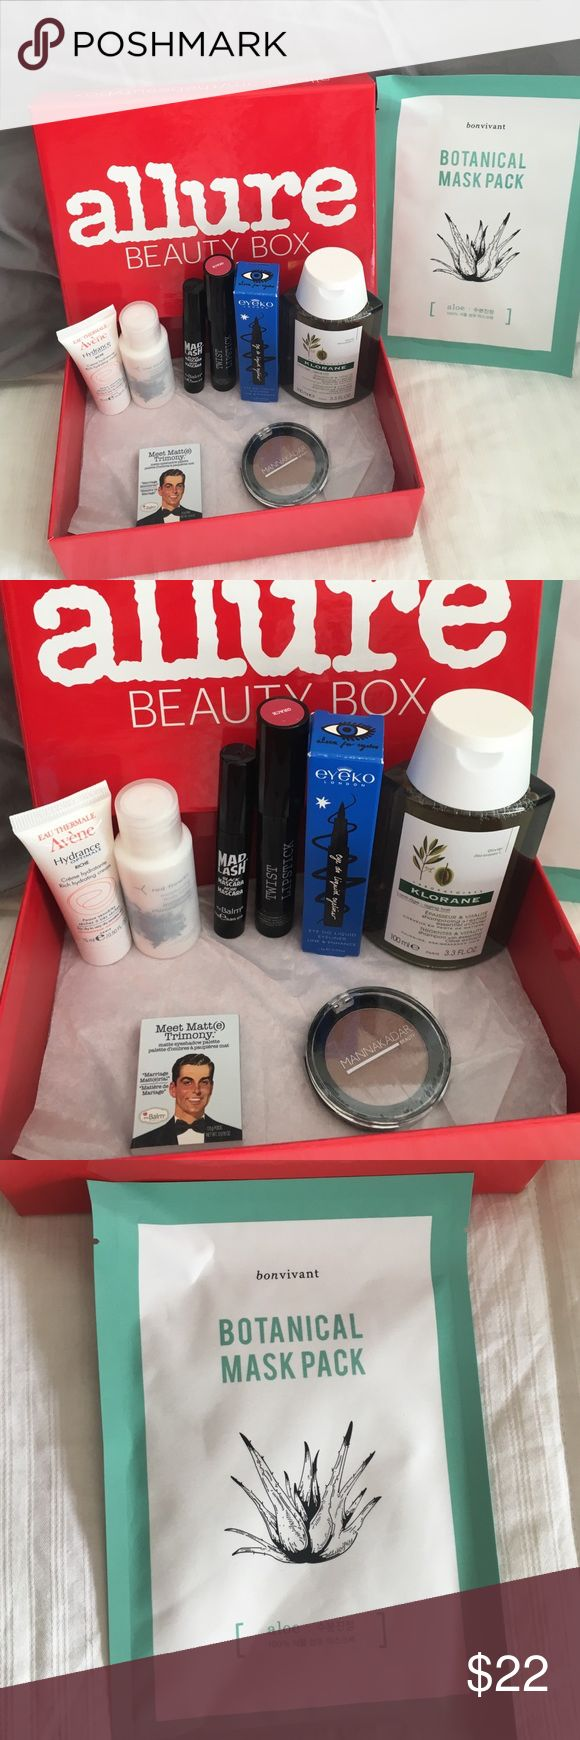 ALLURE 2016 November beauty box plus extras All brand new , comes with everything in my allure November 2016 beauty box plus 4 extras . 1 full size Klorane thickness and vitality shampoo with essential olive extract 3.3 fl.oz, also bontanical mask pack, eyeko London eye do liquid eyeliner,AVENE rich hydrating creme,Red Flower moisturizing body lotion in Icelandic moonflower,Mannakadar beauty blush/highlighter in Fantasy, The Balm matte eyeshadow,the balm mad lash black mascara,full size…